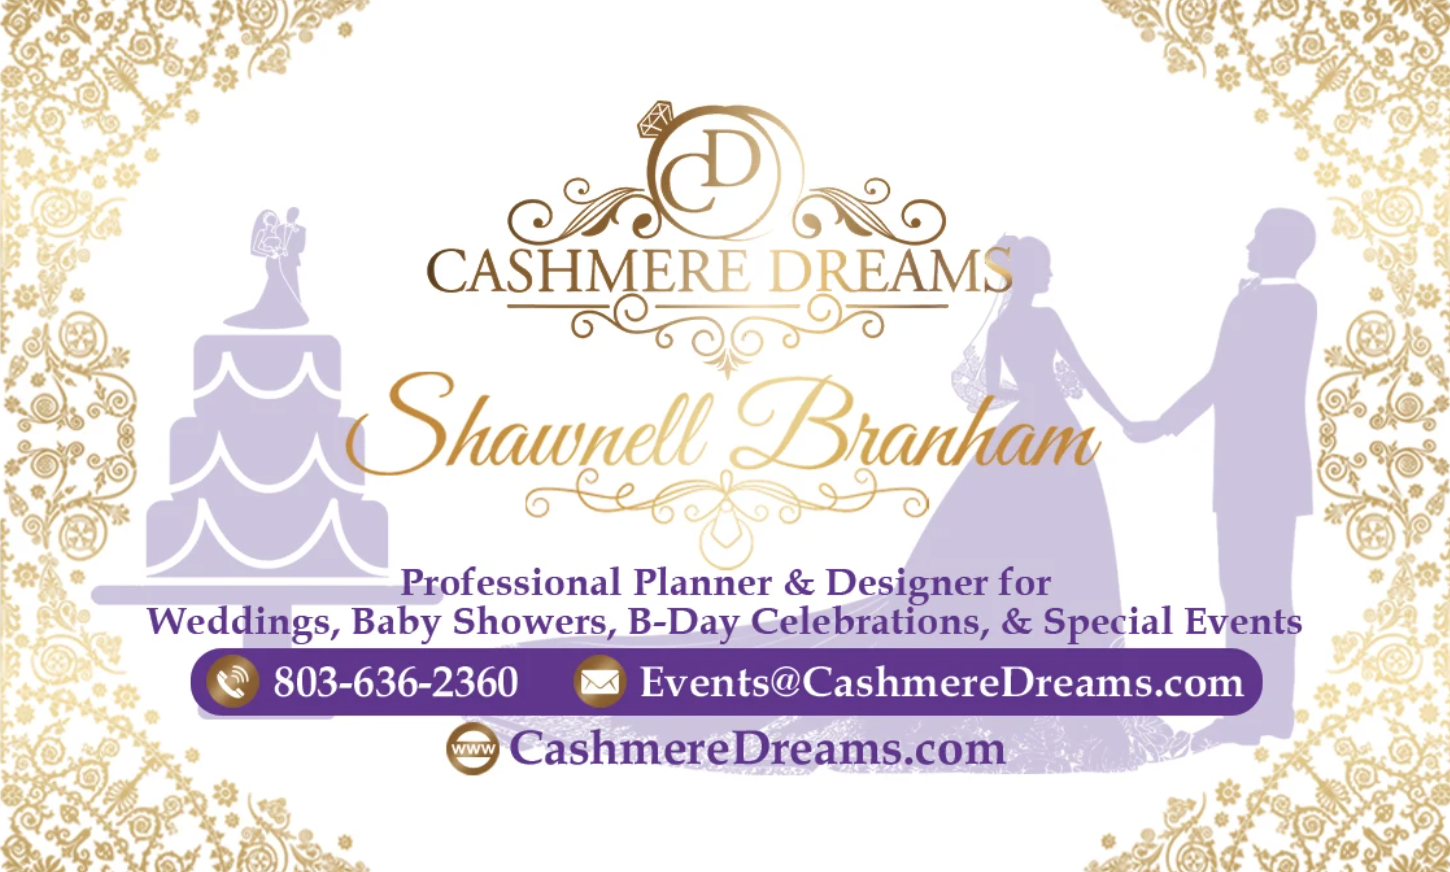 Wedding & Events Planner Cashmere Dreams Welcomes Engaged Couples to Book their Dream Wedding